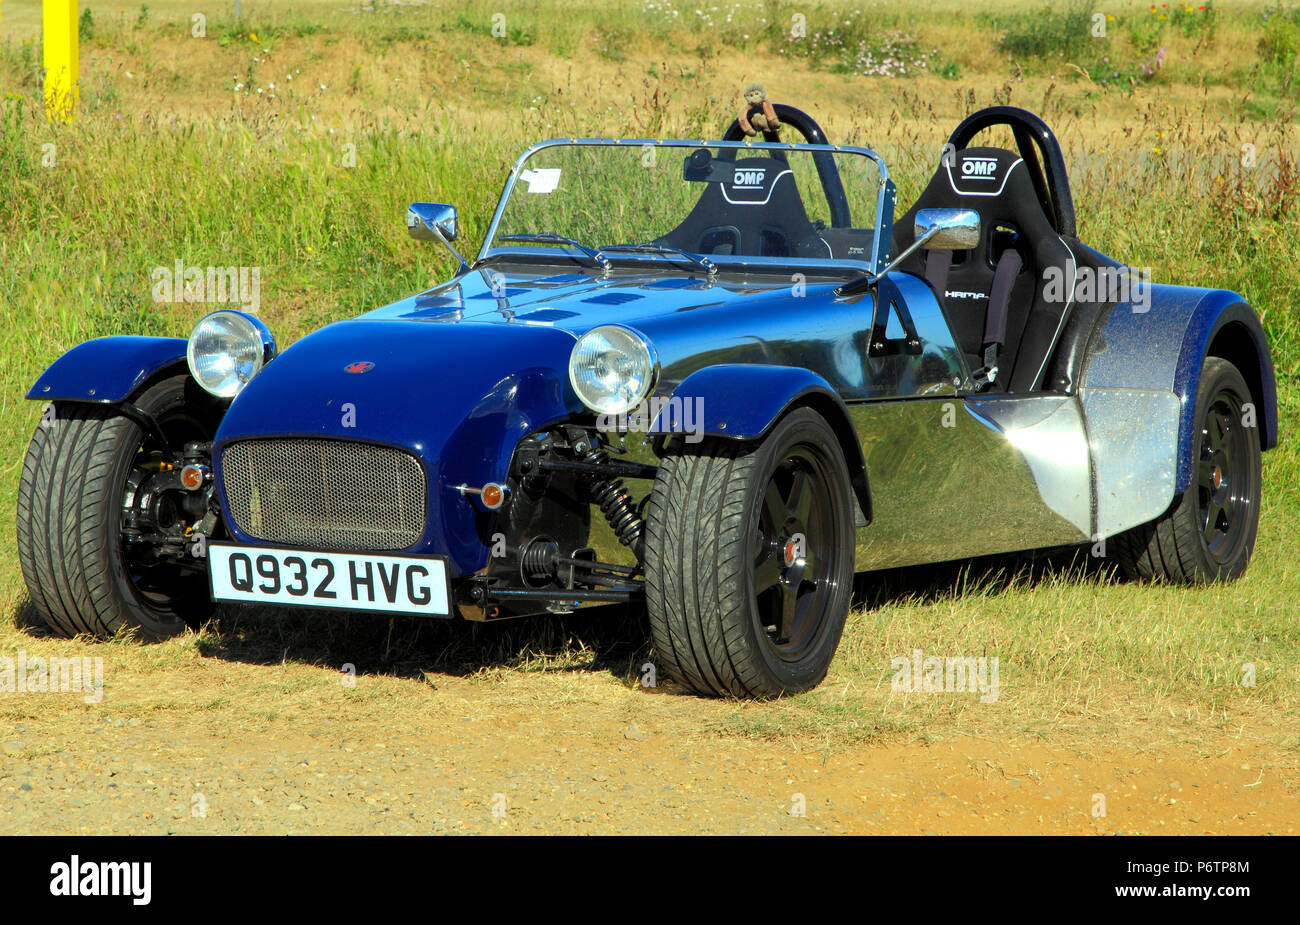 Robin Hood Sports Car, kit model, Norfolk, England, UK - Stock Image